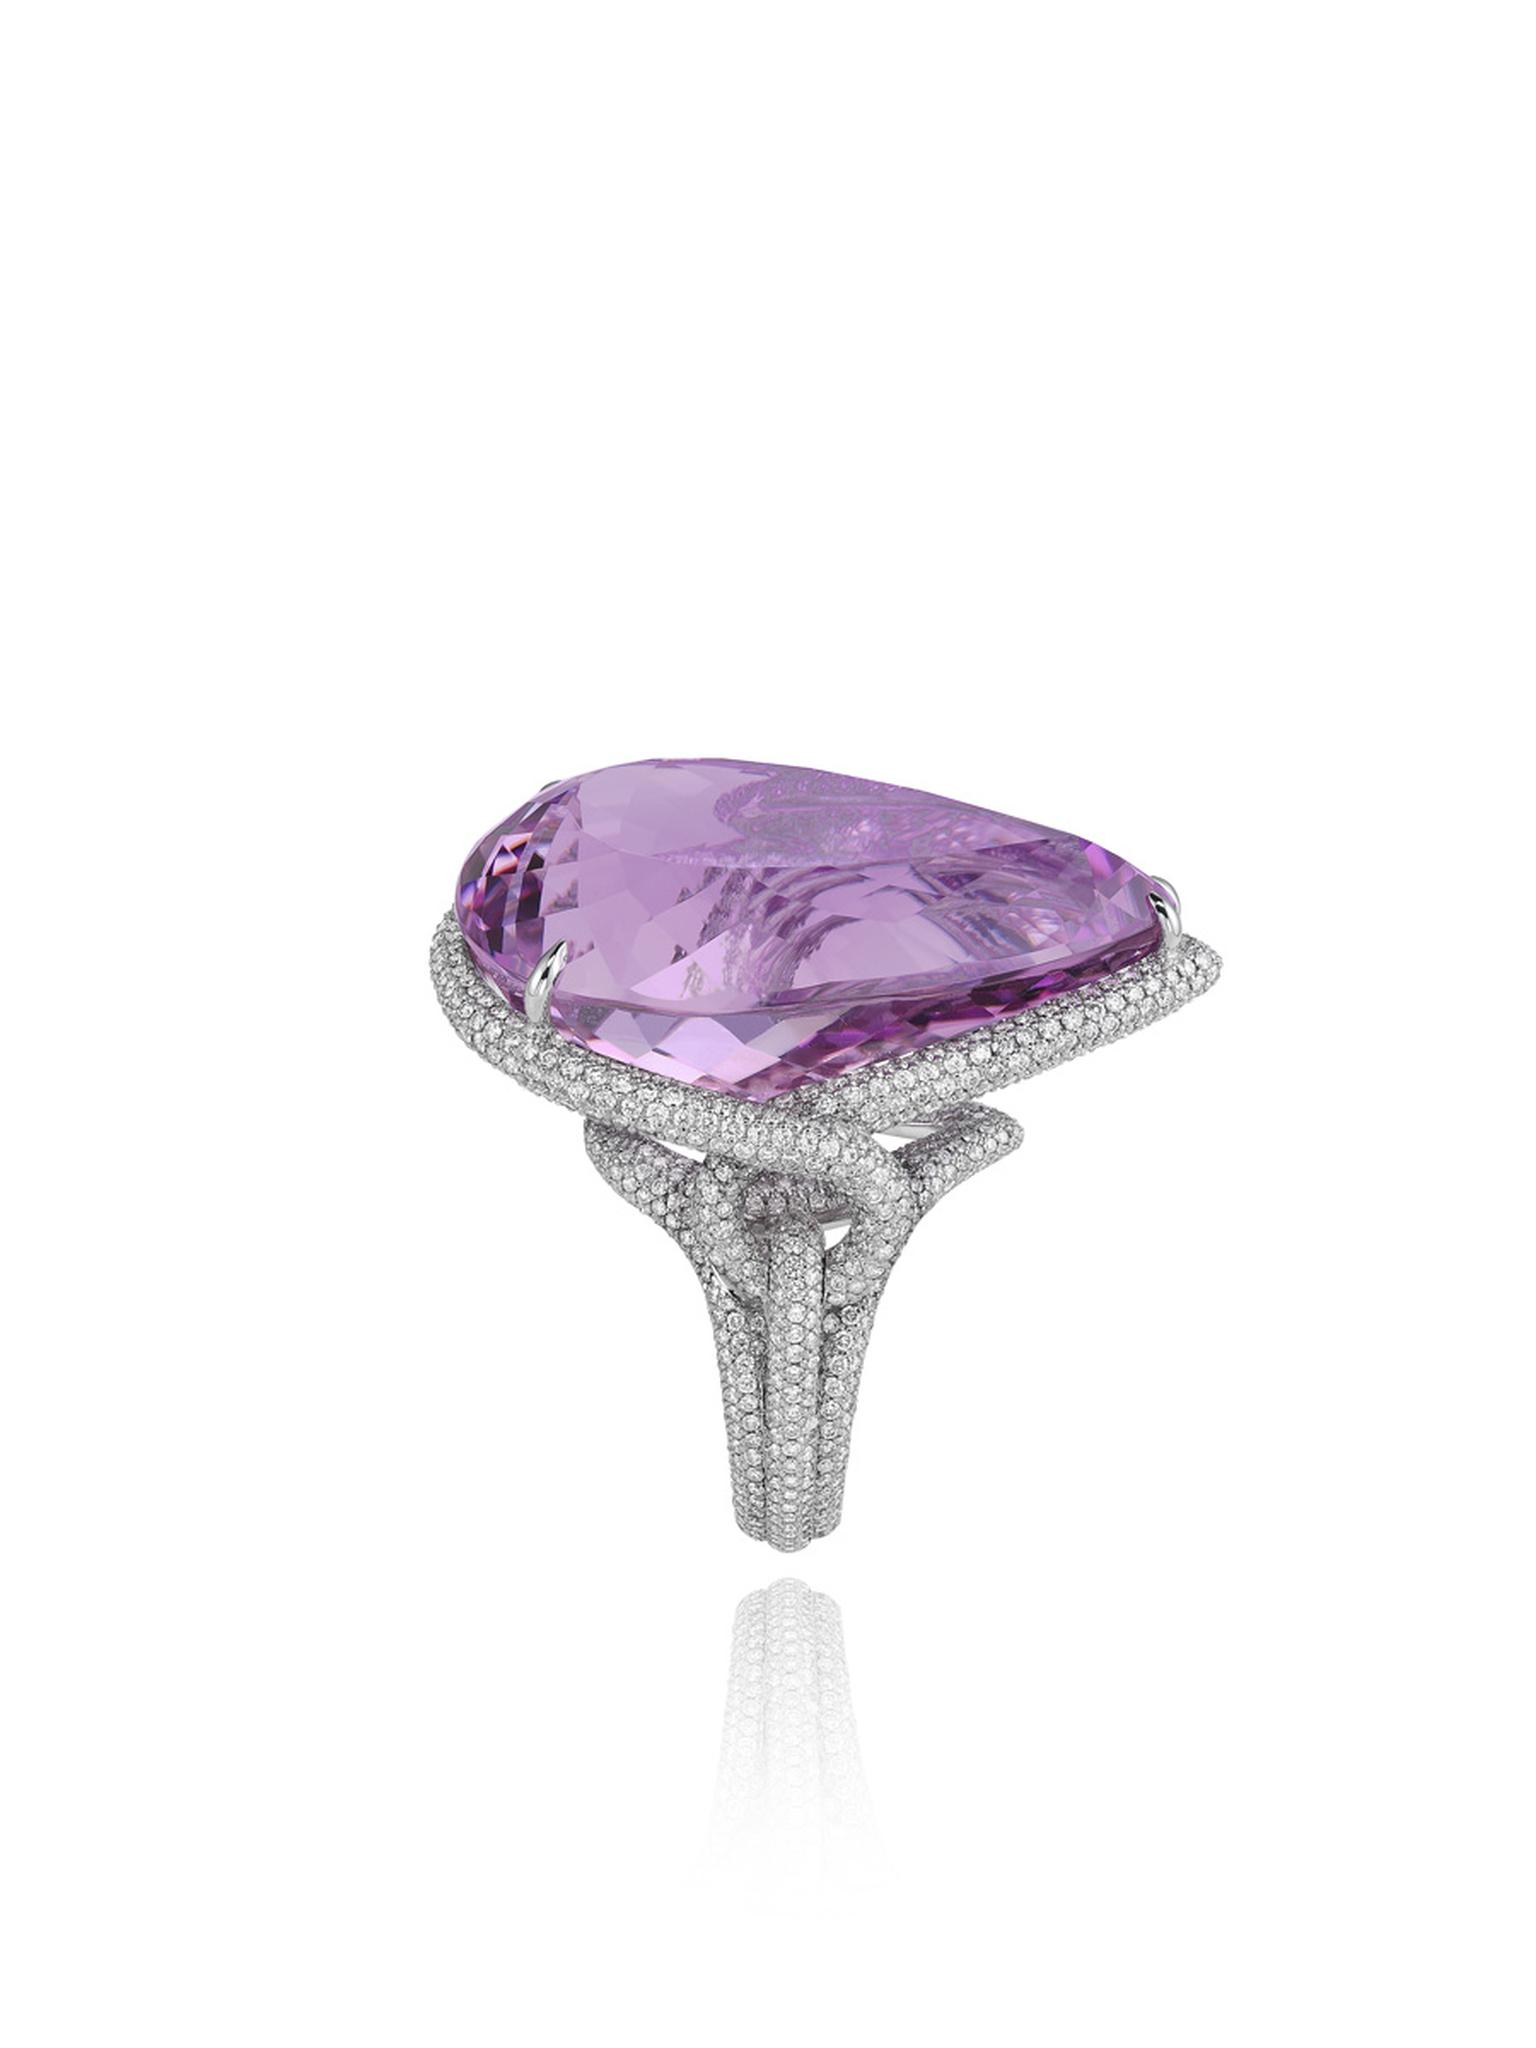 manual-Kunzite-Ring--from-the-Red-Carpet-Collection-2013.jpg